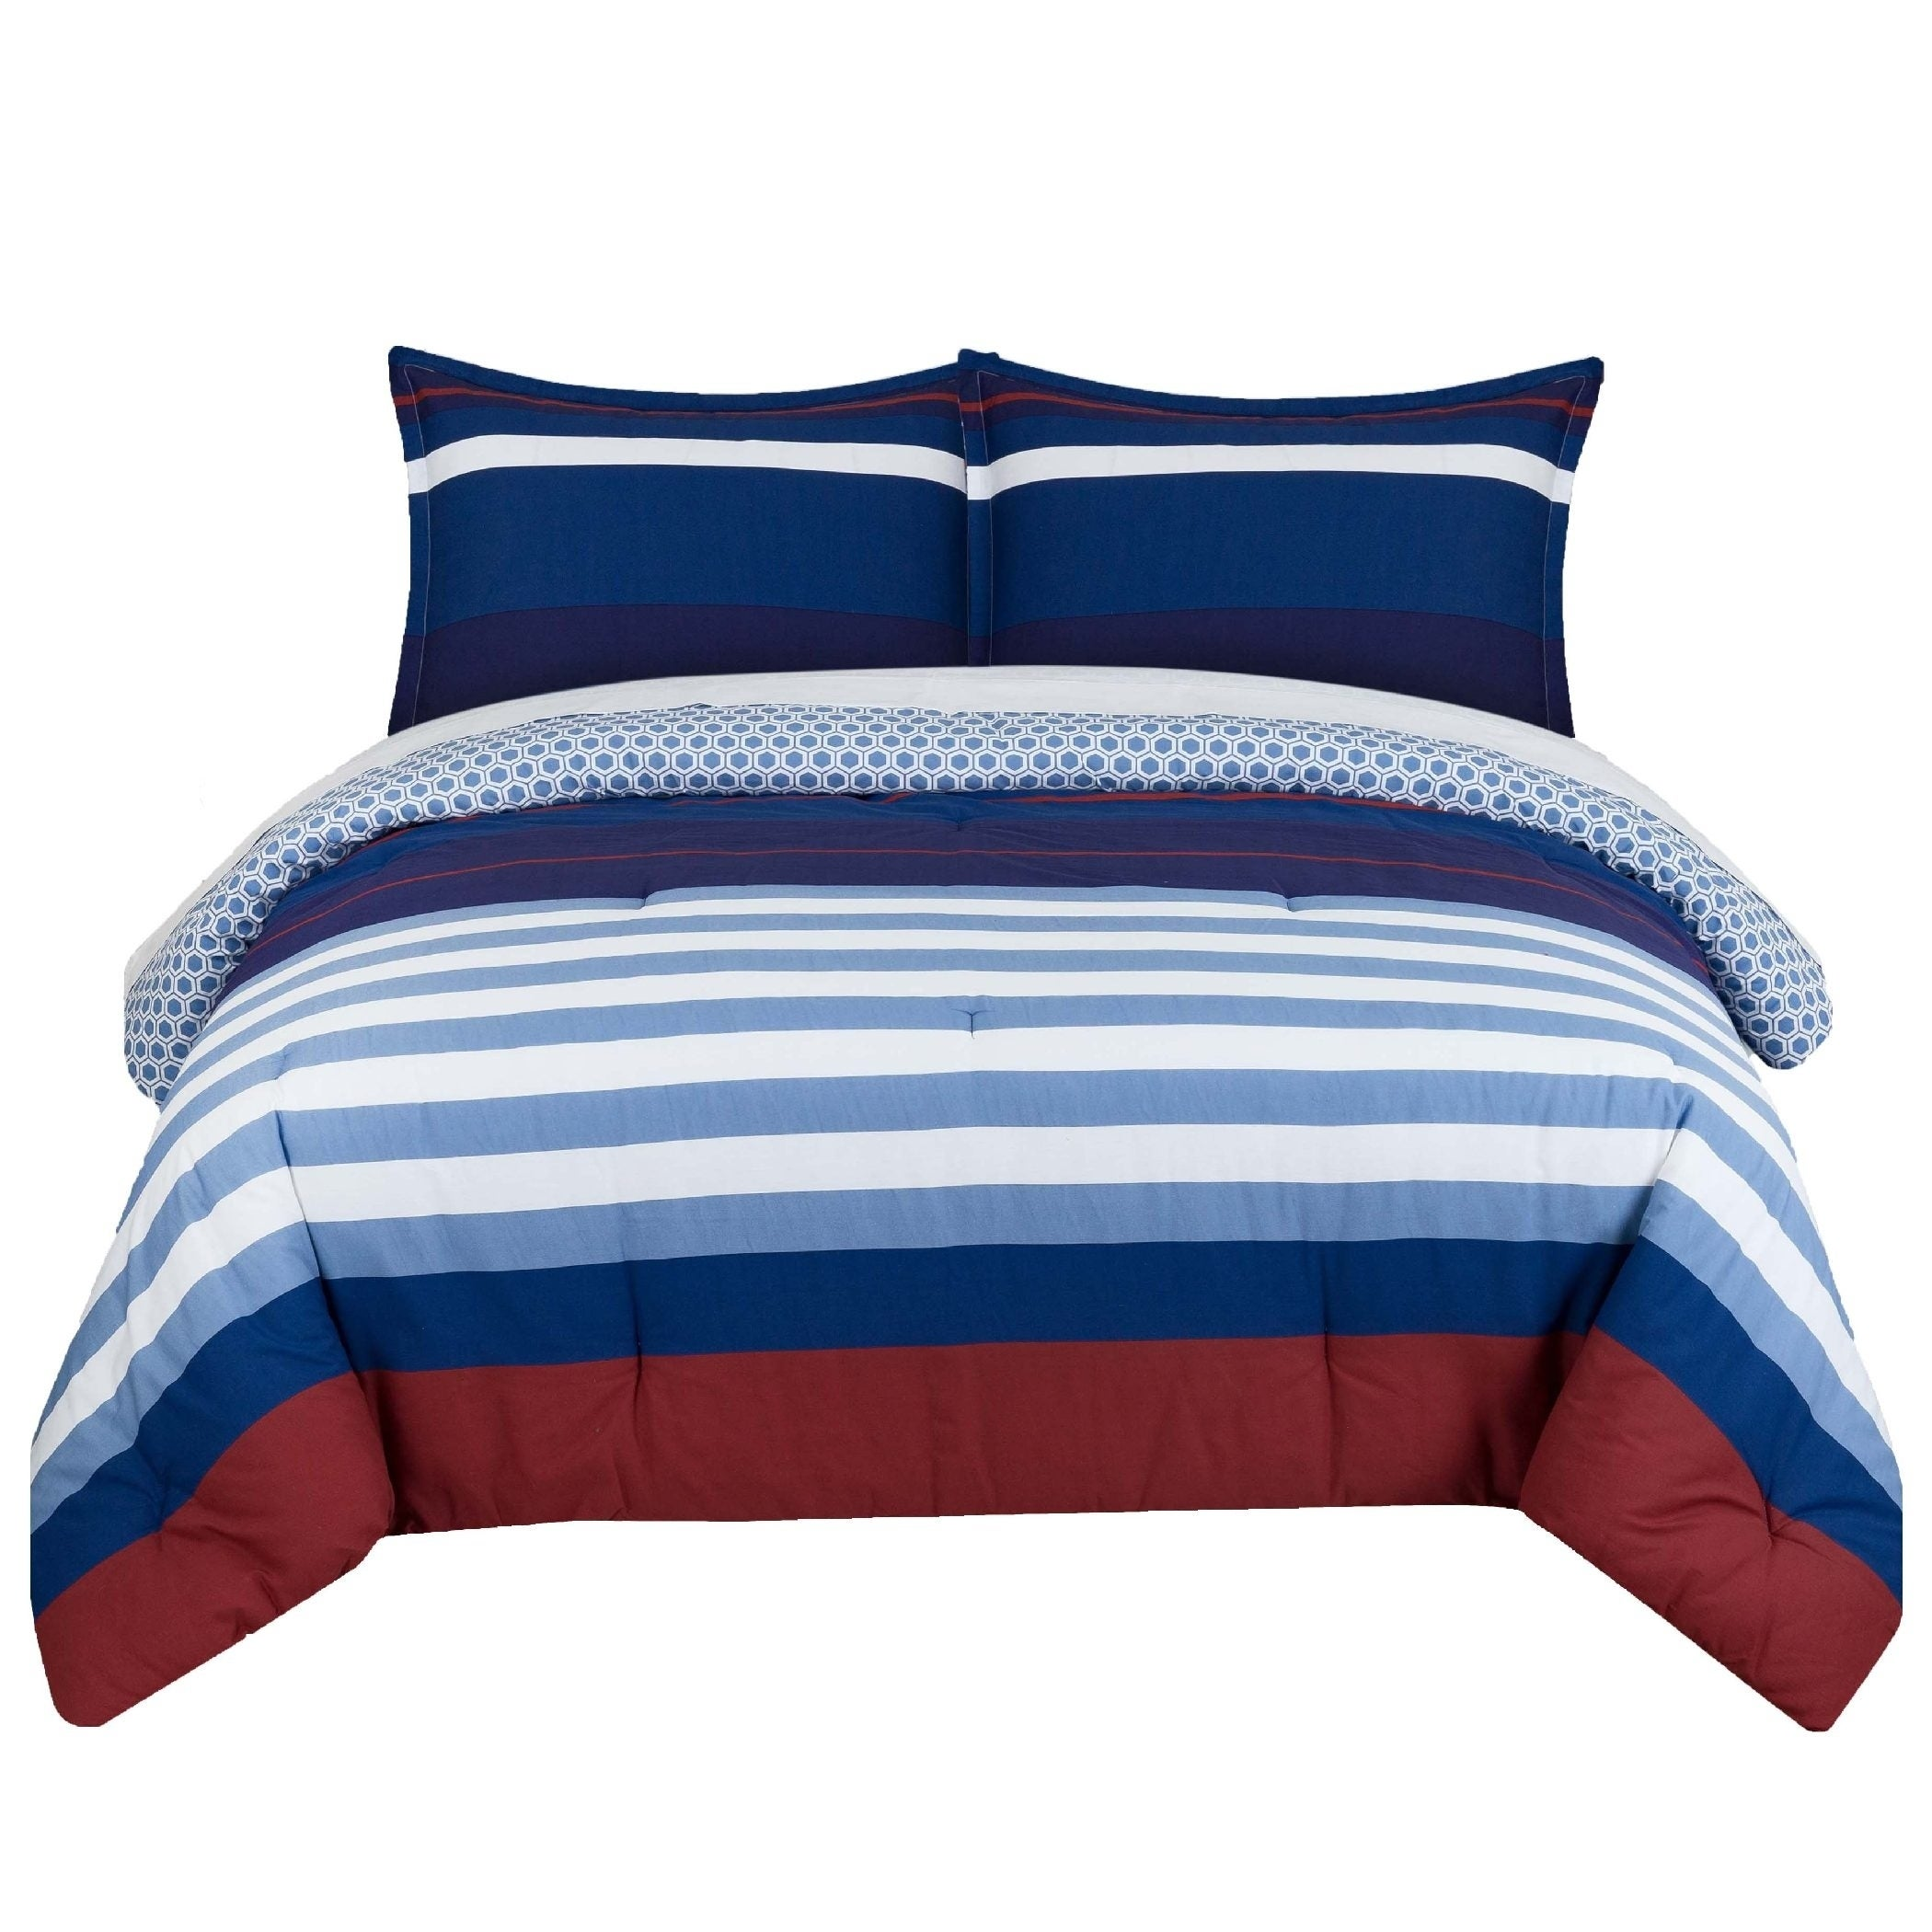 sheets house dw sets bedspreads soulful quilt harbor beach bea noble comforters comforter me multipurpose twin stripe club damask nautical charter bedding